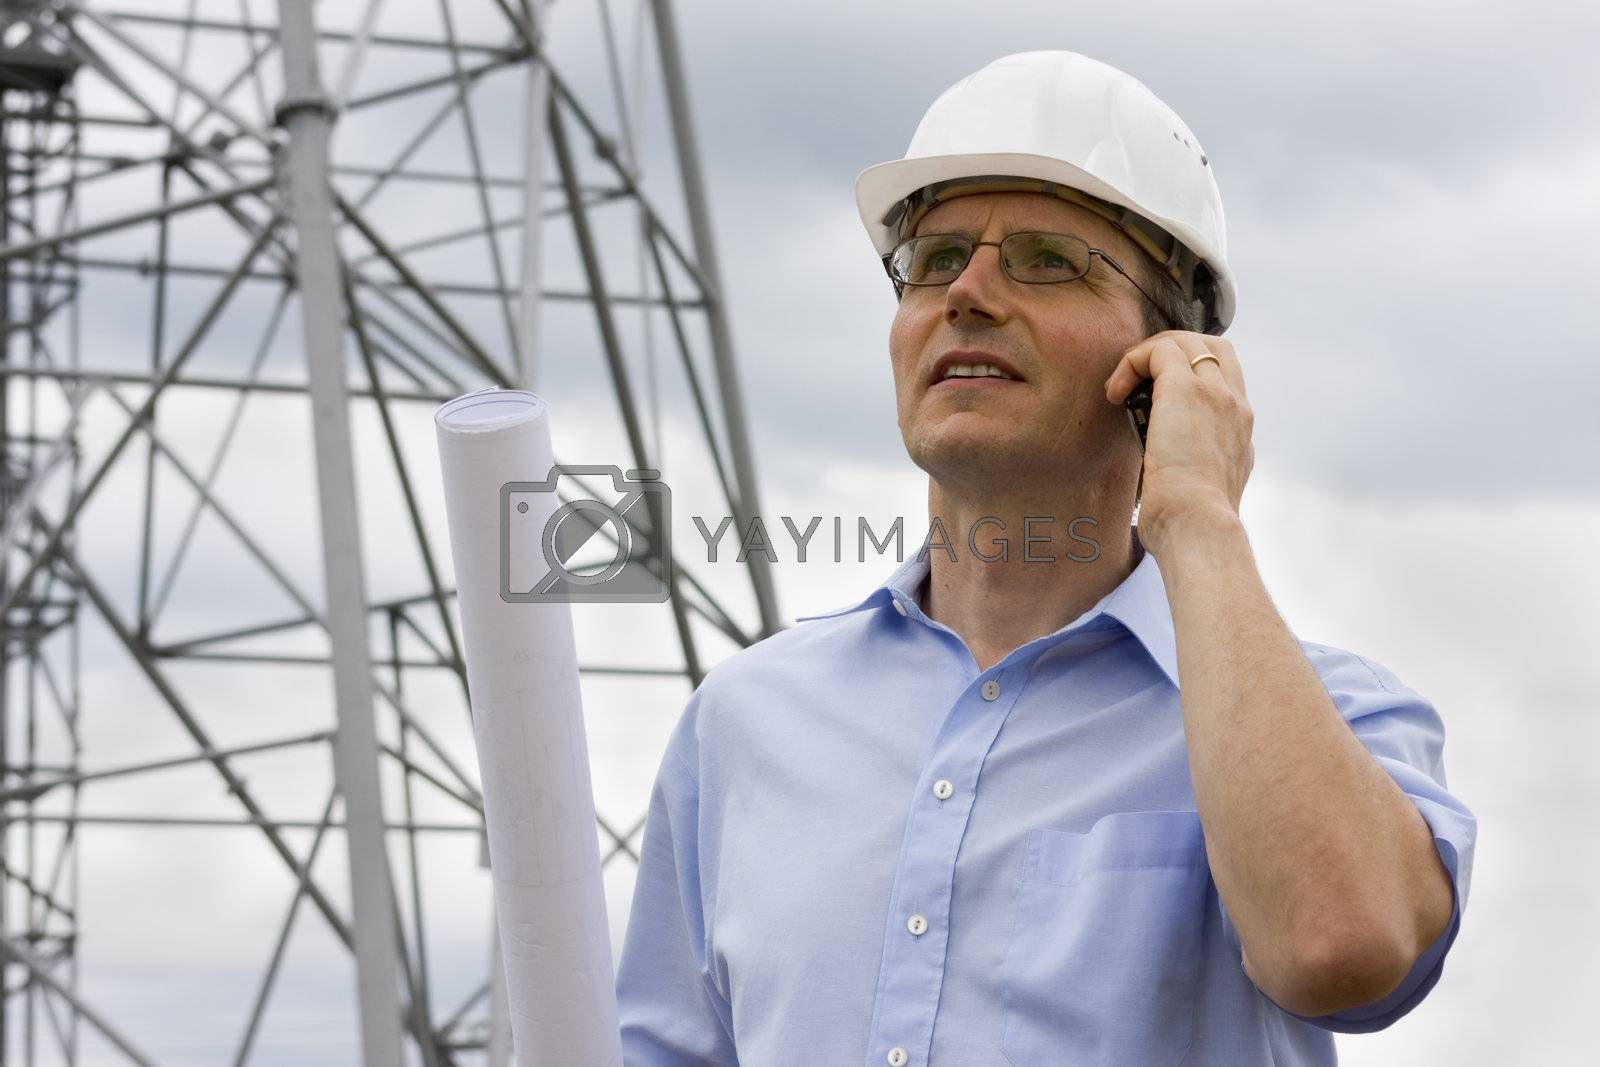 Engineer talking on mobile phone on construction side